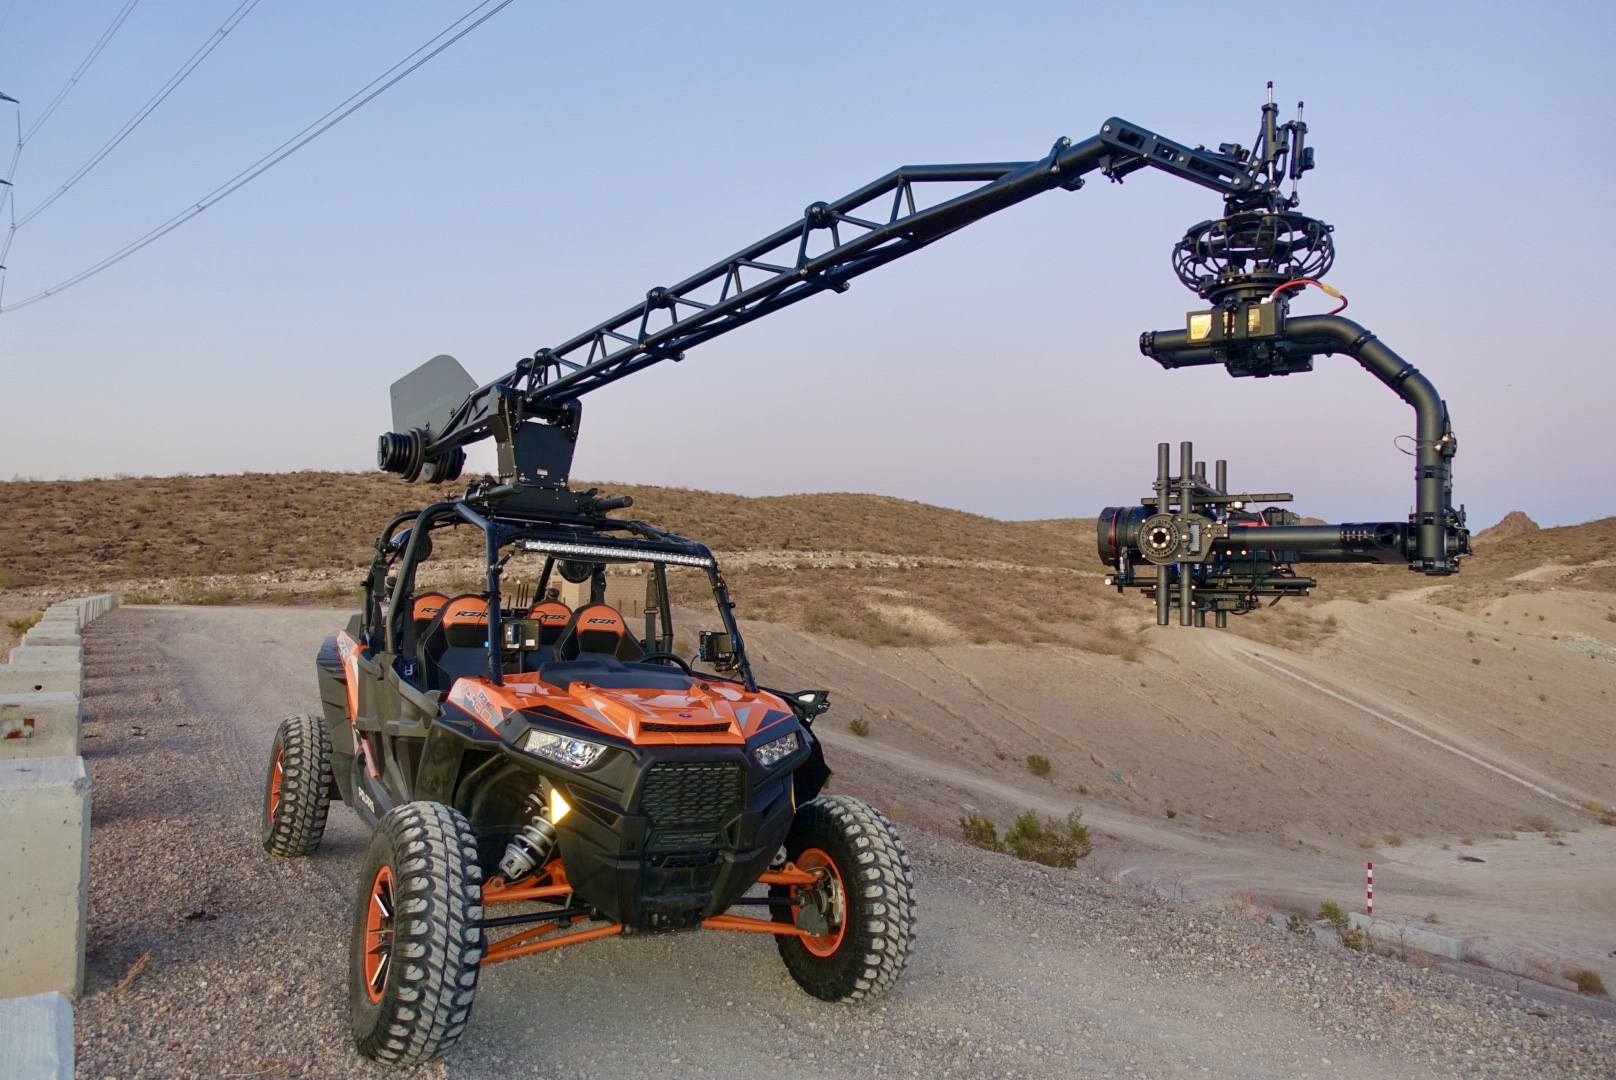 Motocrane_Ultra_Movi_XL_RZR_Turbo2